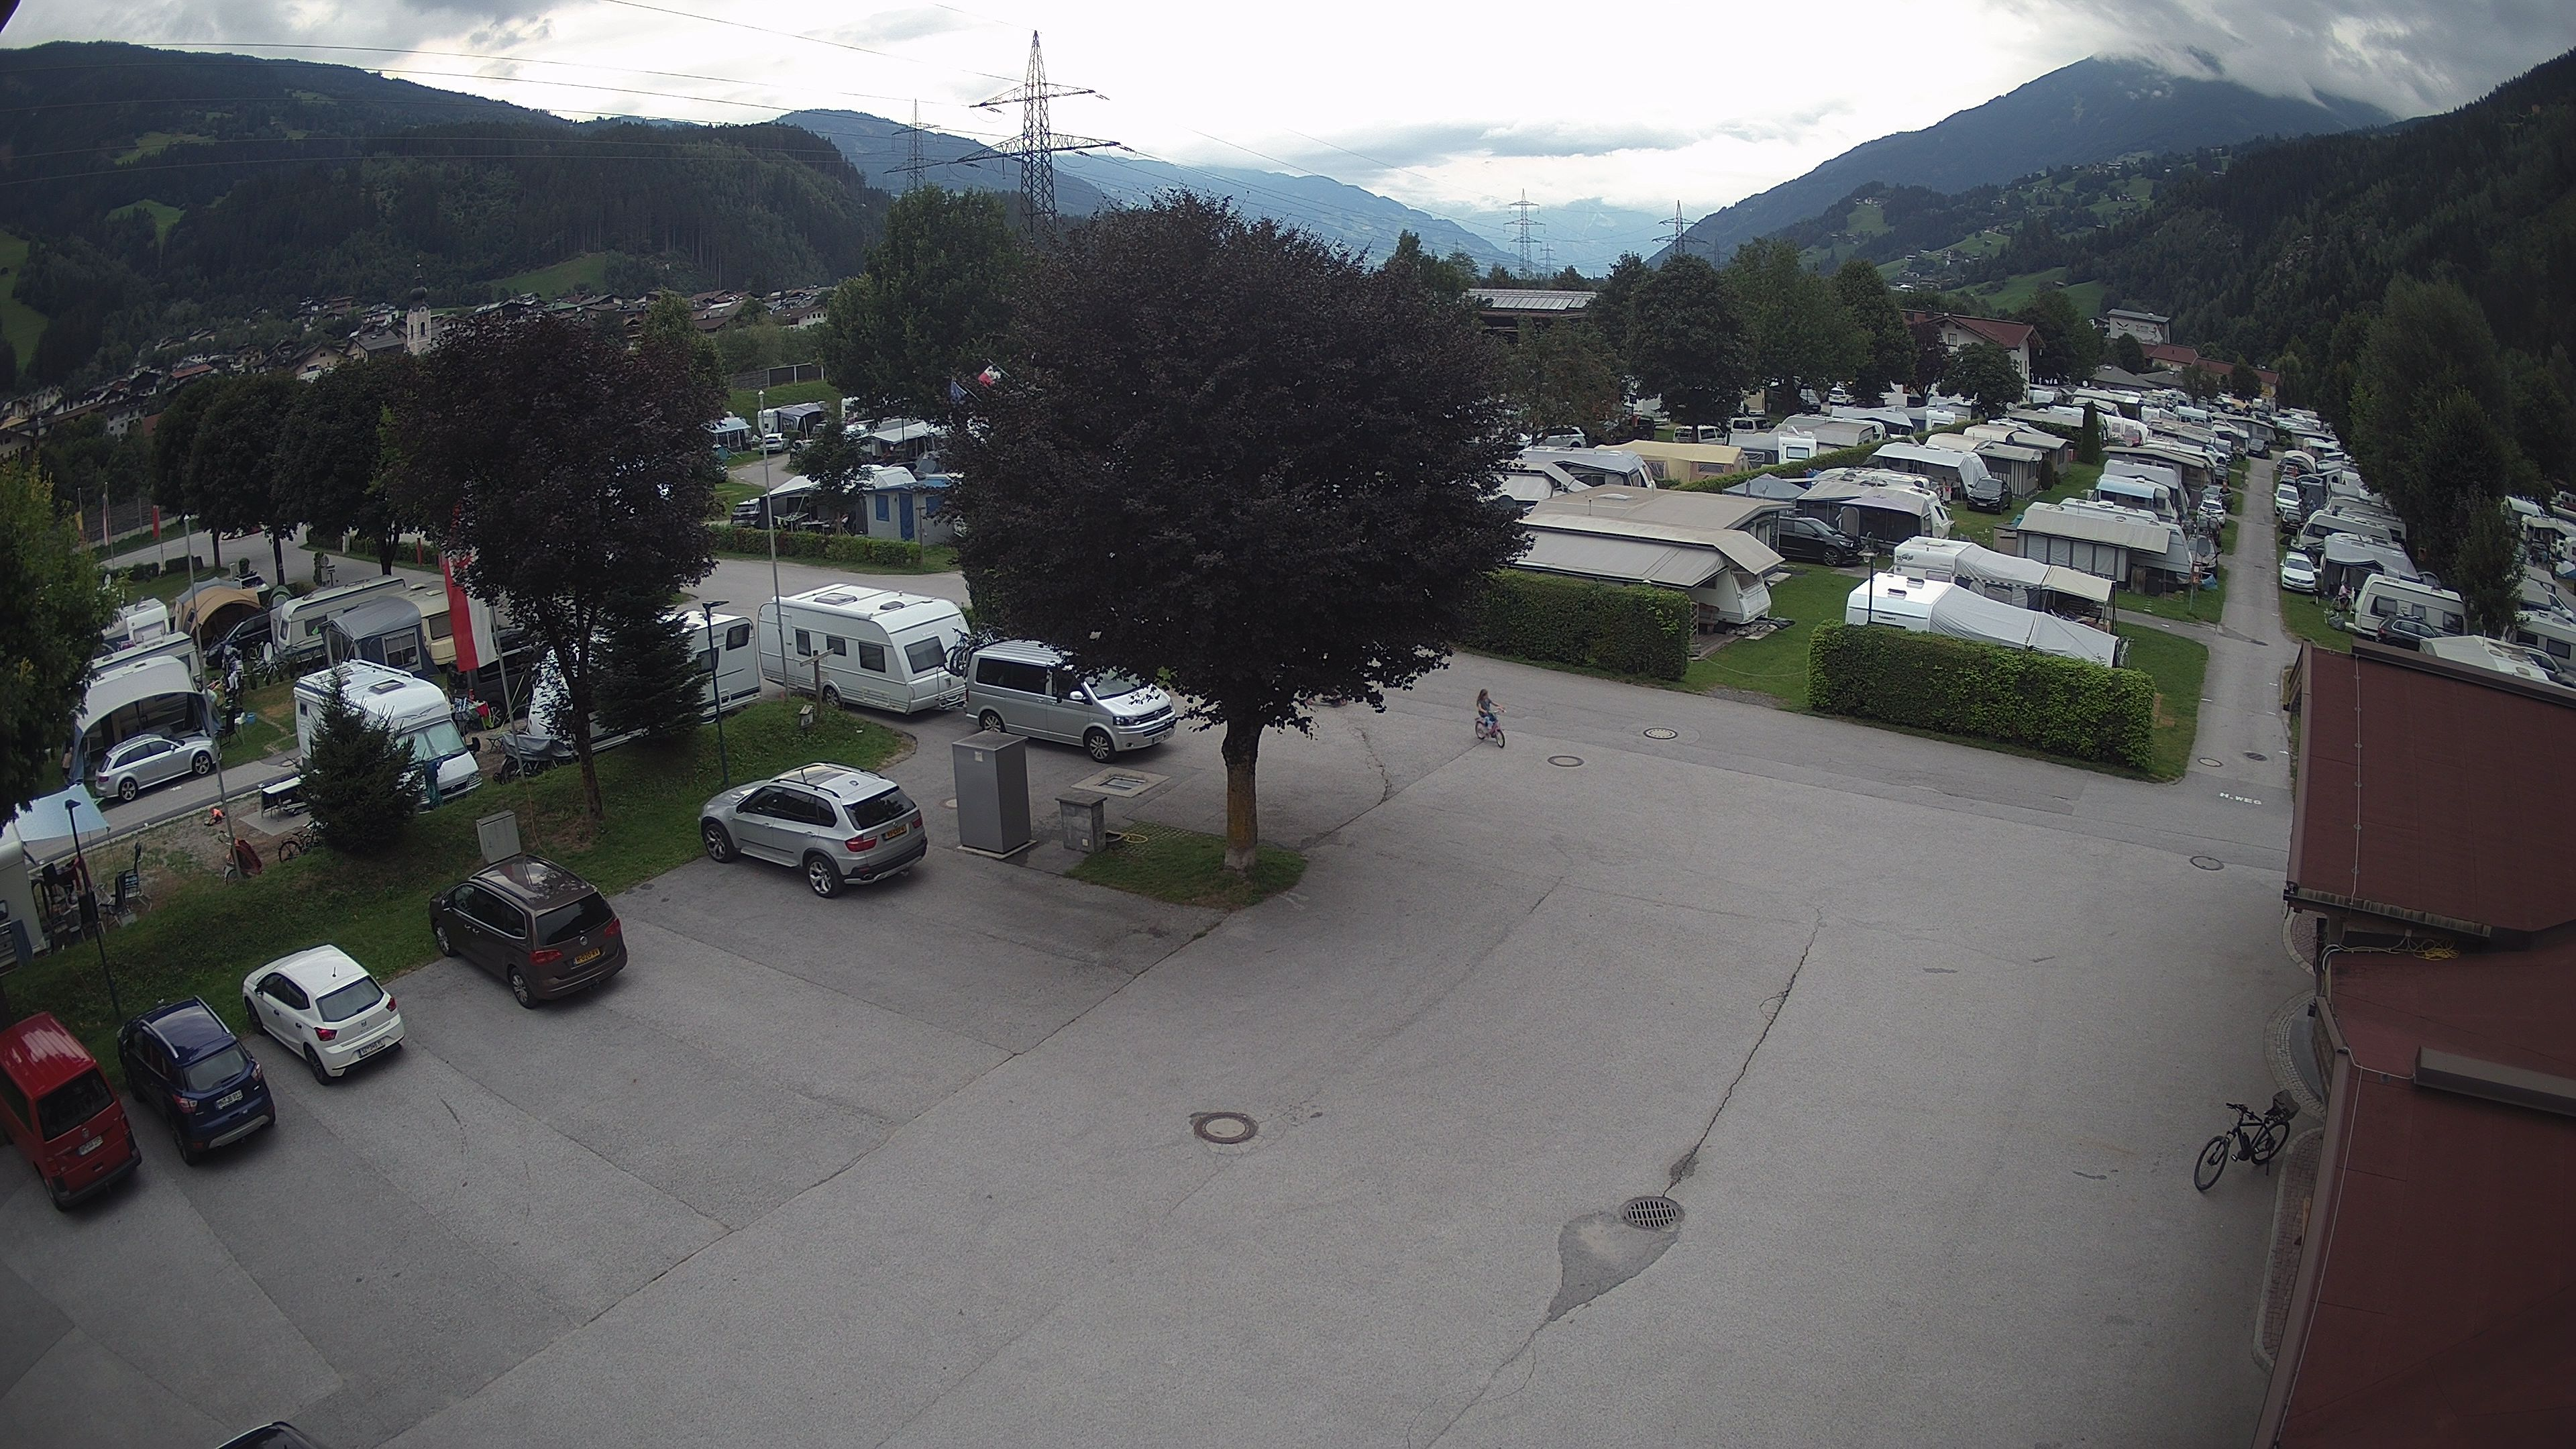 https://www.camping-zillertal.at/webcam/webcam/upload/parkplatz_TIMING